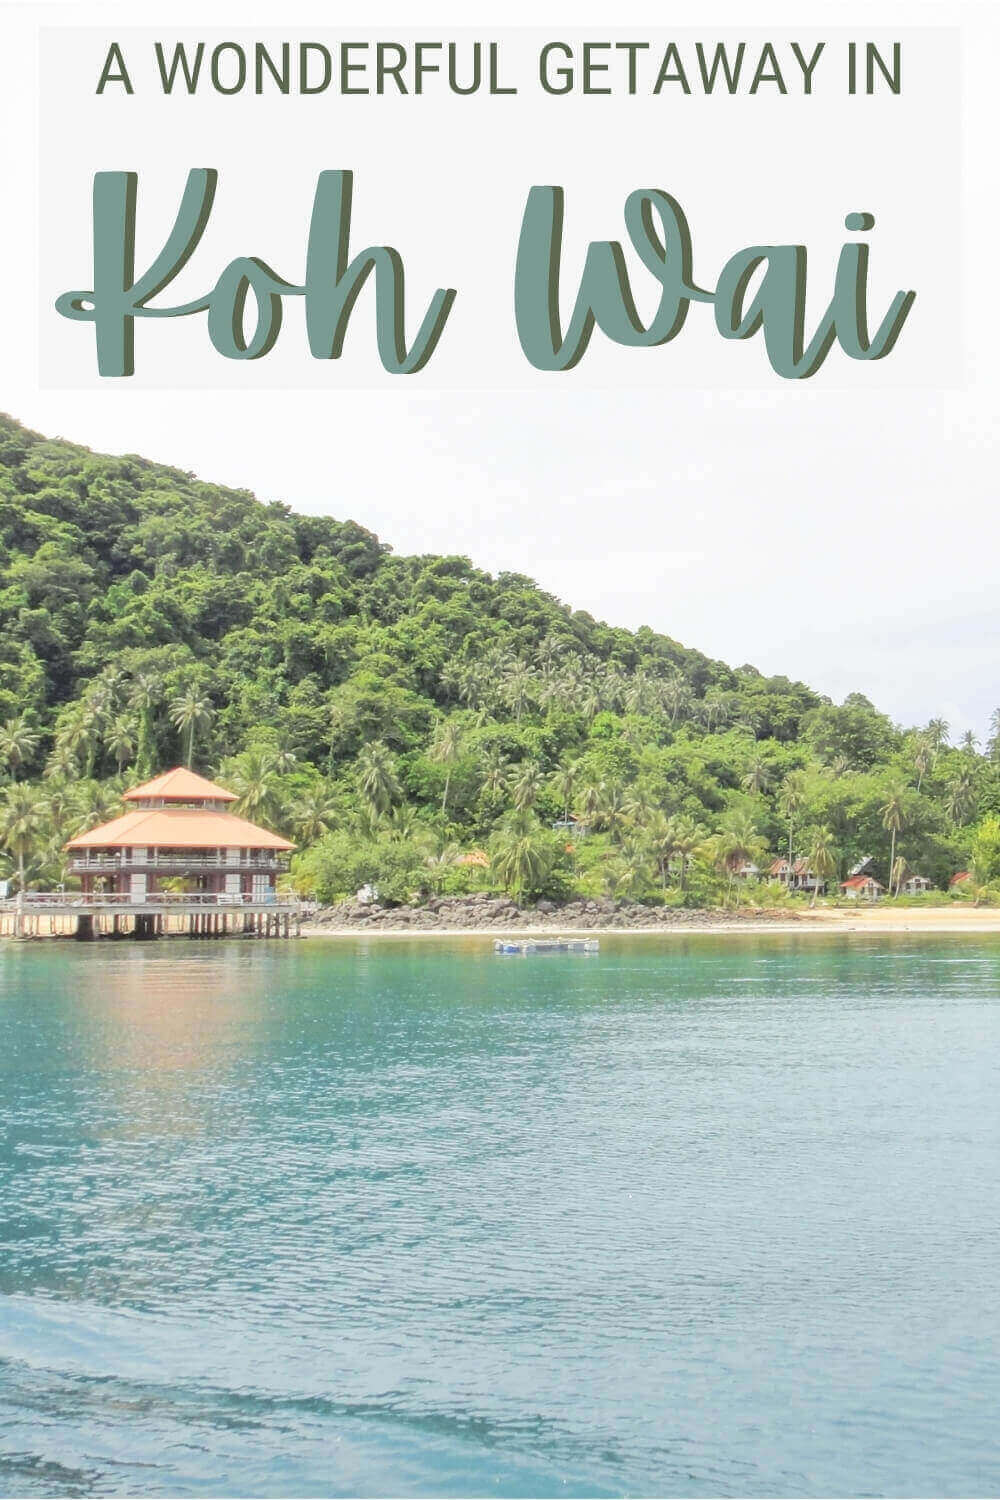 Learn how to have a great getaway in Koh Wai - via @clautavani